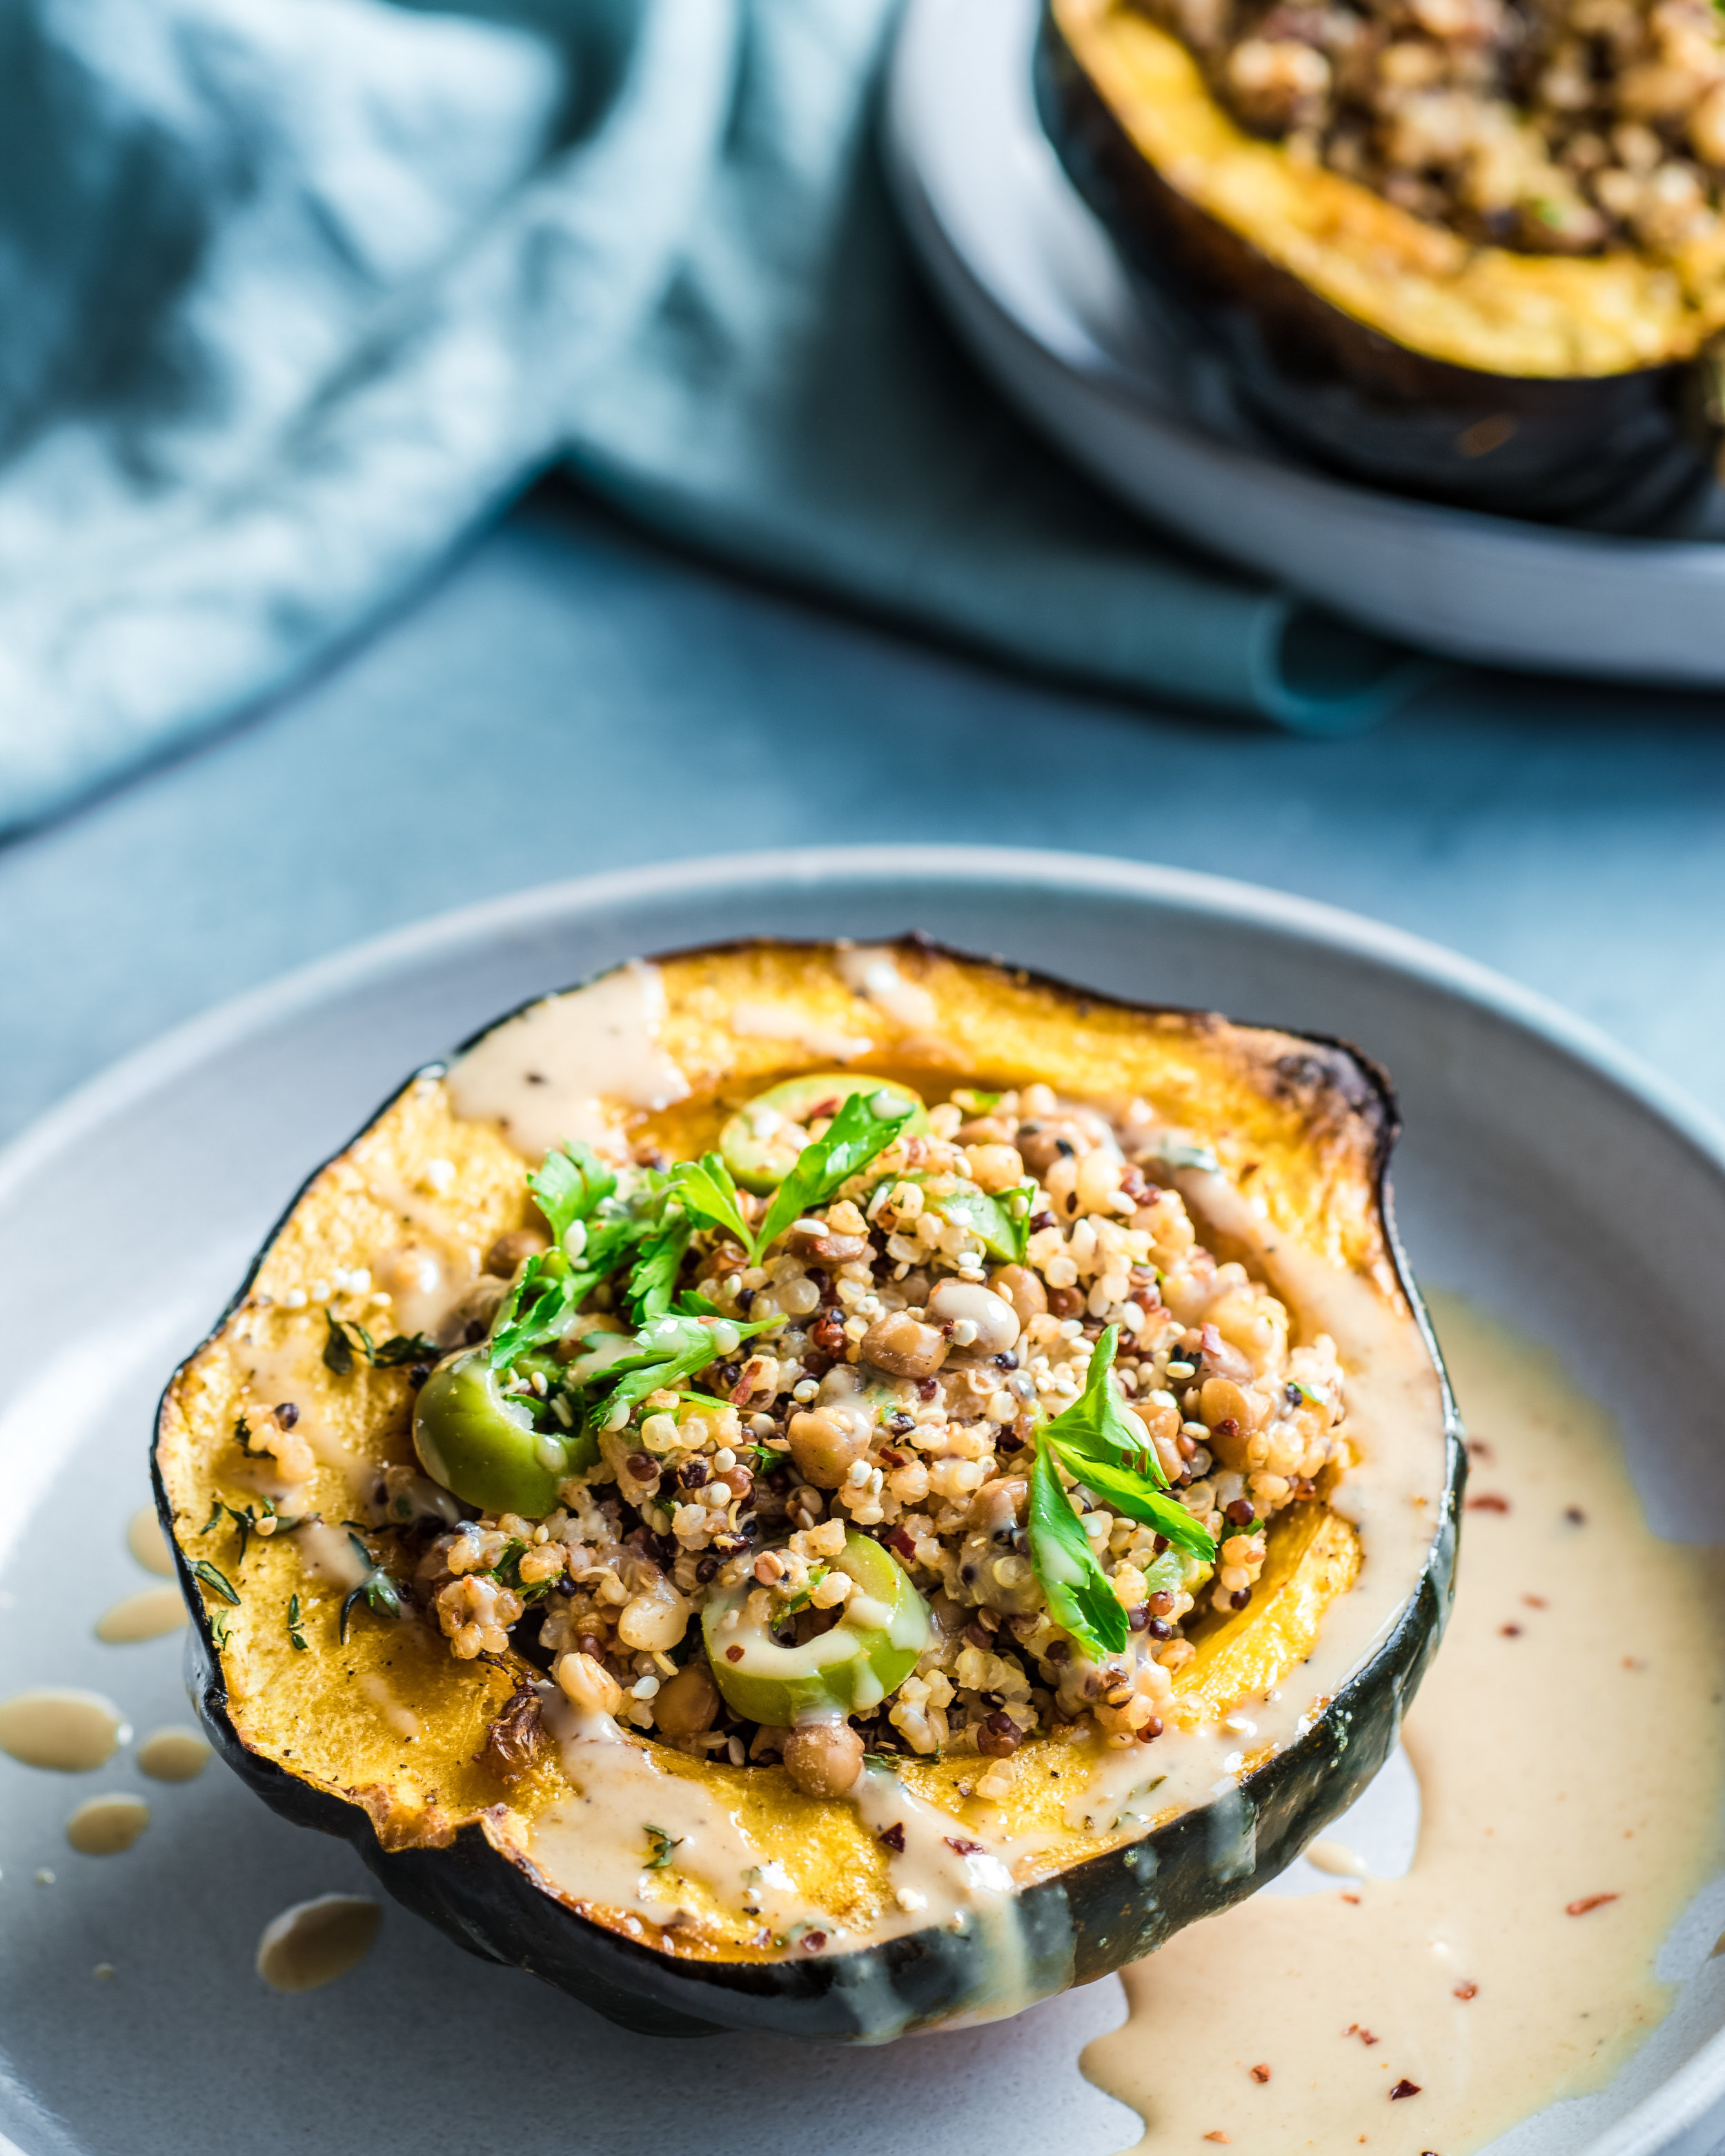 Low FODMAP Quinoa-Stuffed Acorn Squash